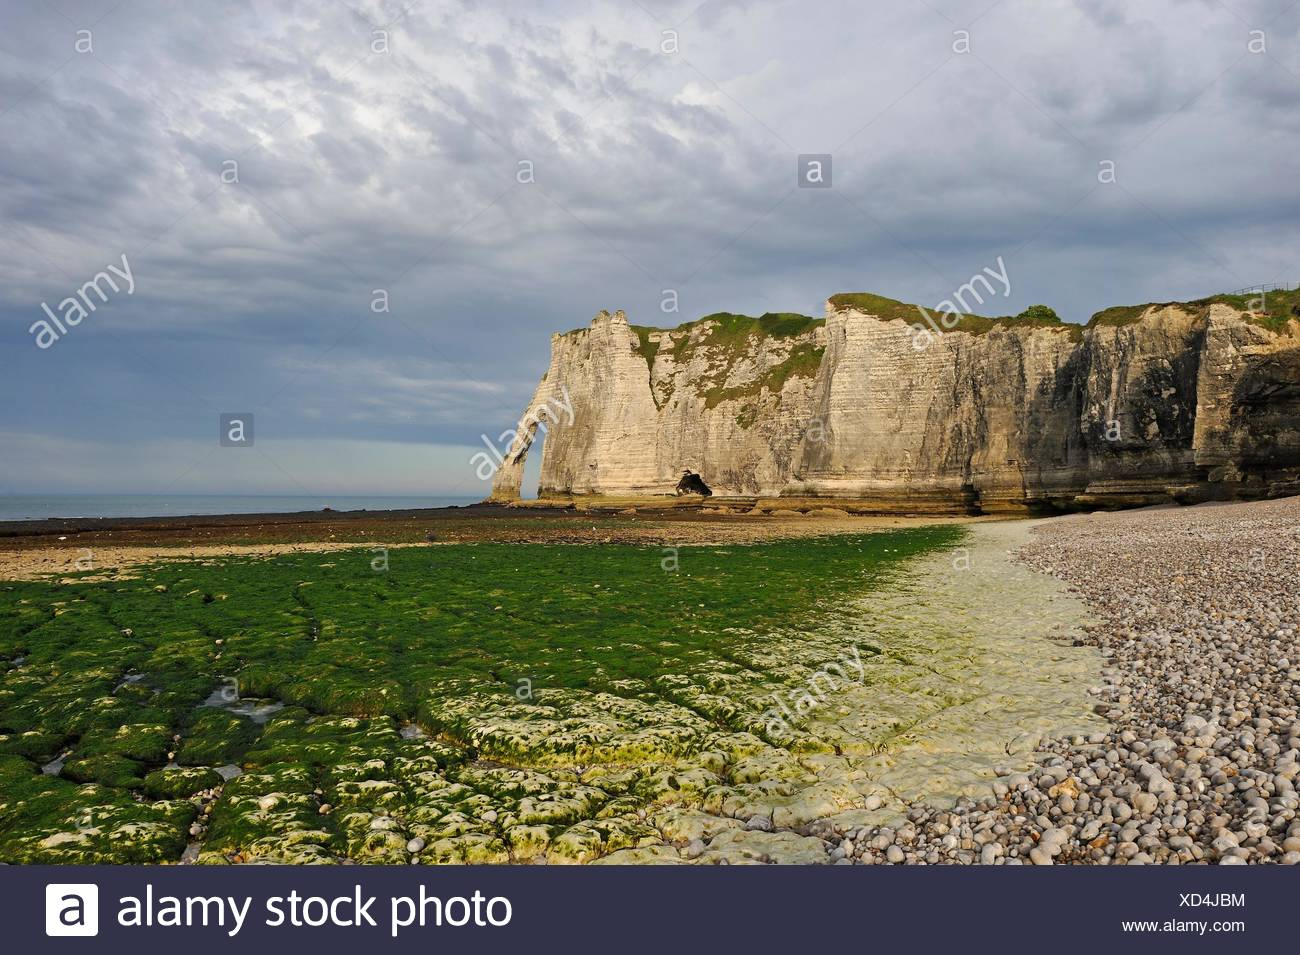 foreshore at low tide and cliff, Etretat, Seine-Maritime department, Normandie region, France, Europe. - Stock Image